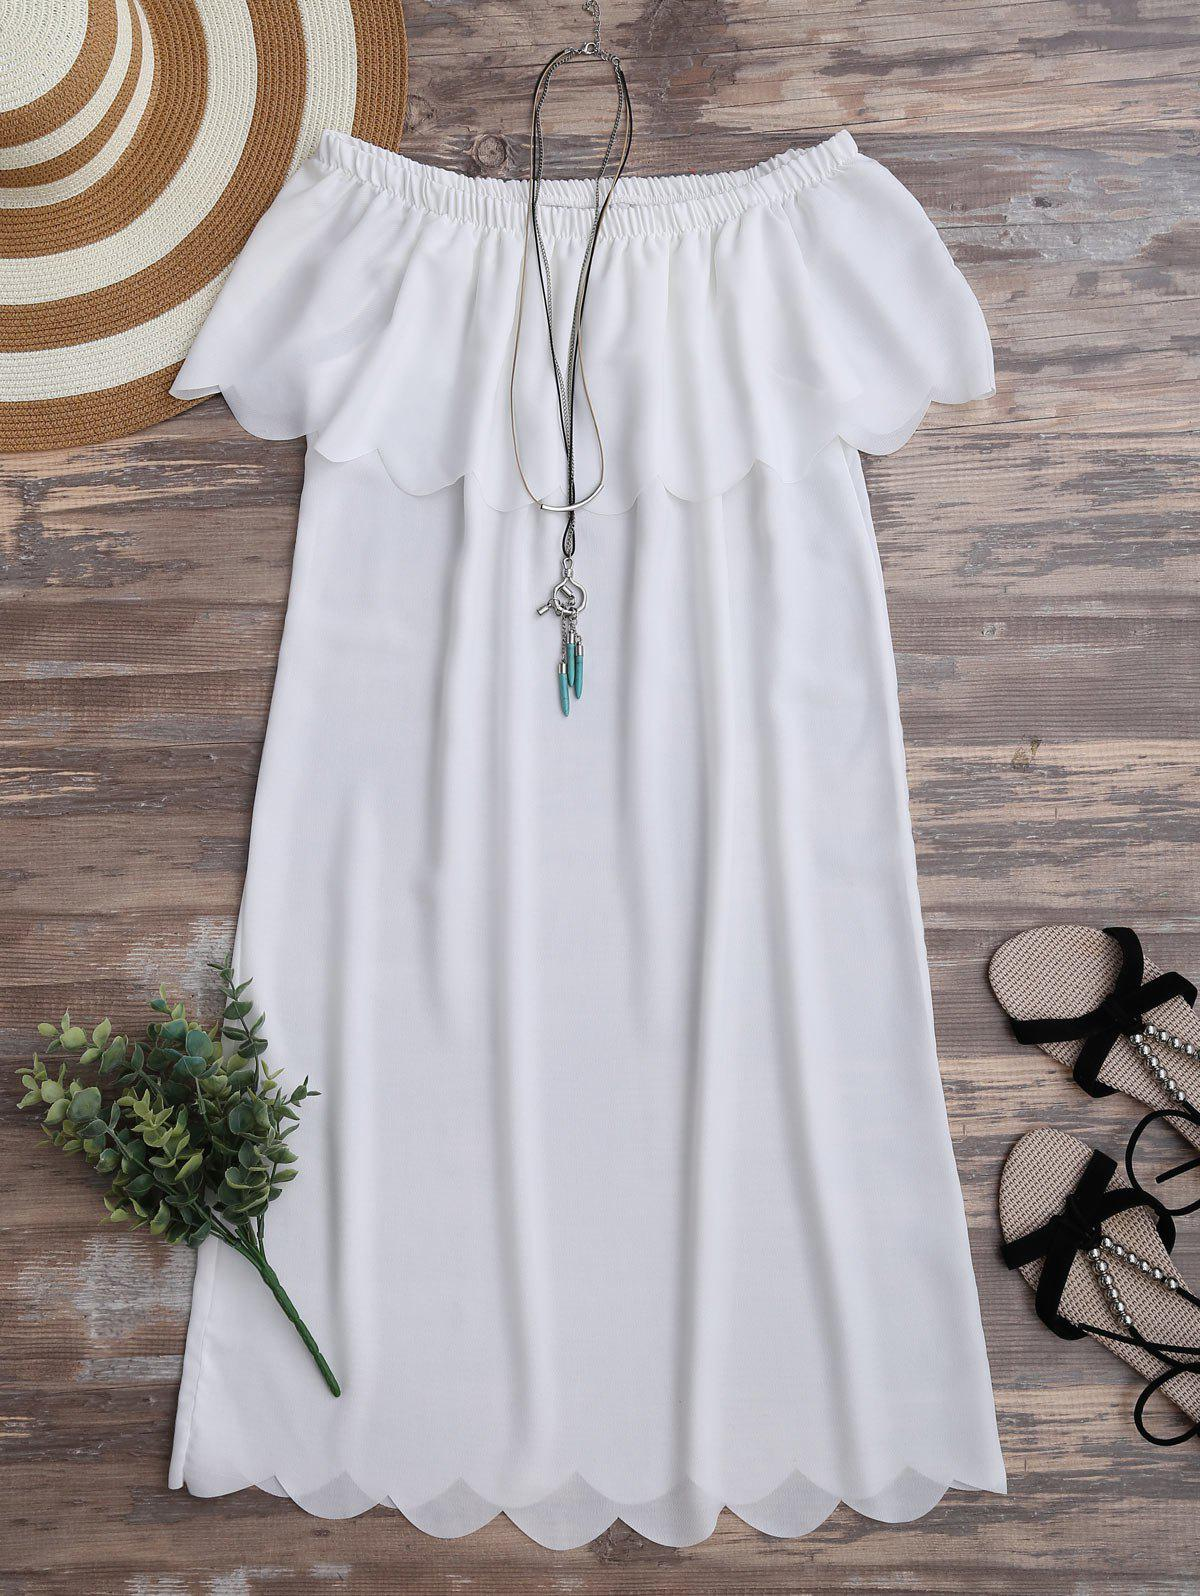 Casual Off The Shoulder Chiffon Dress - WHITE XL